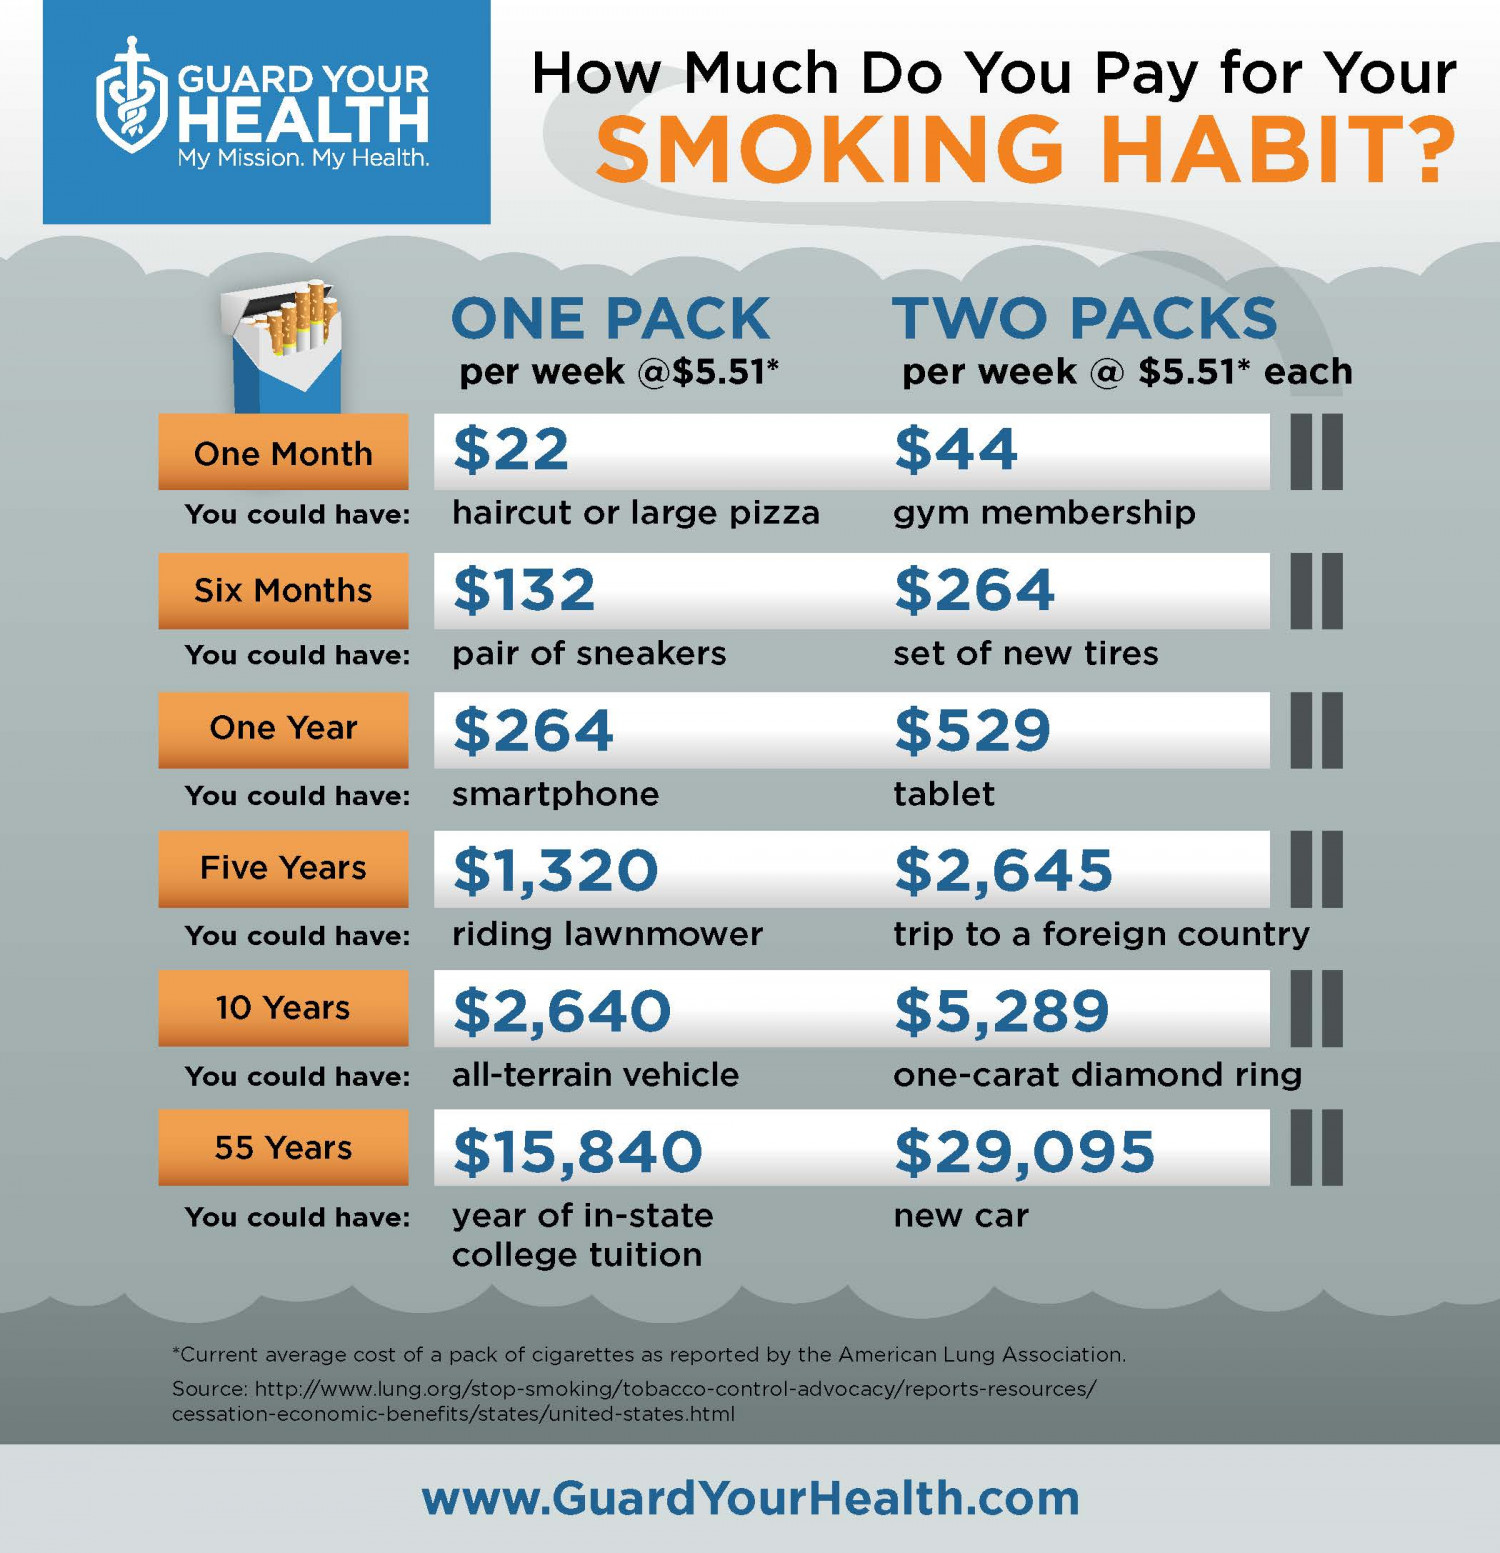 How Much Do You Pay for Your Smoking Habit? Infographic